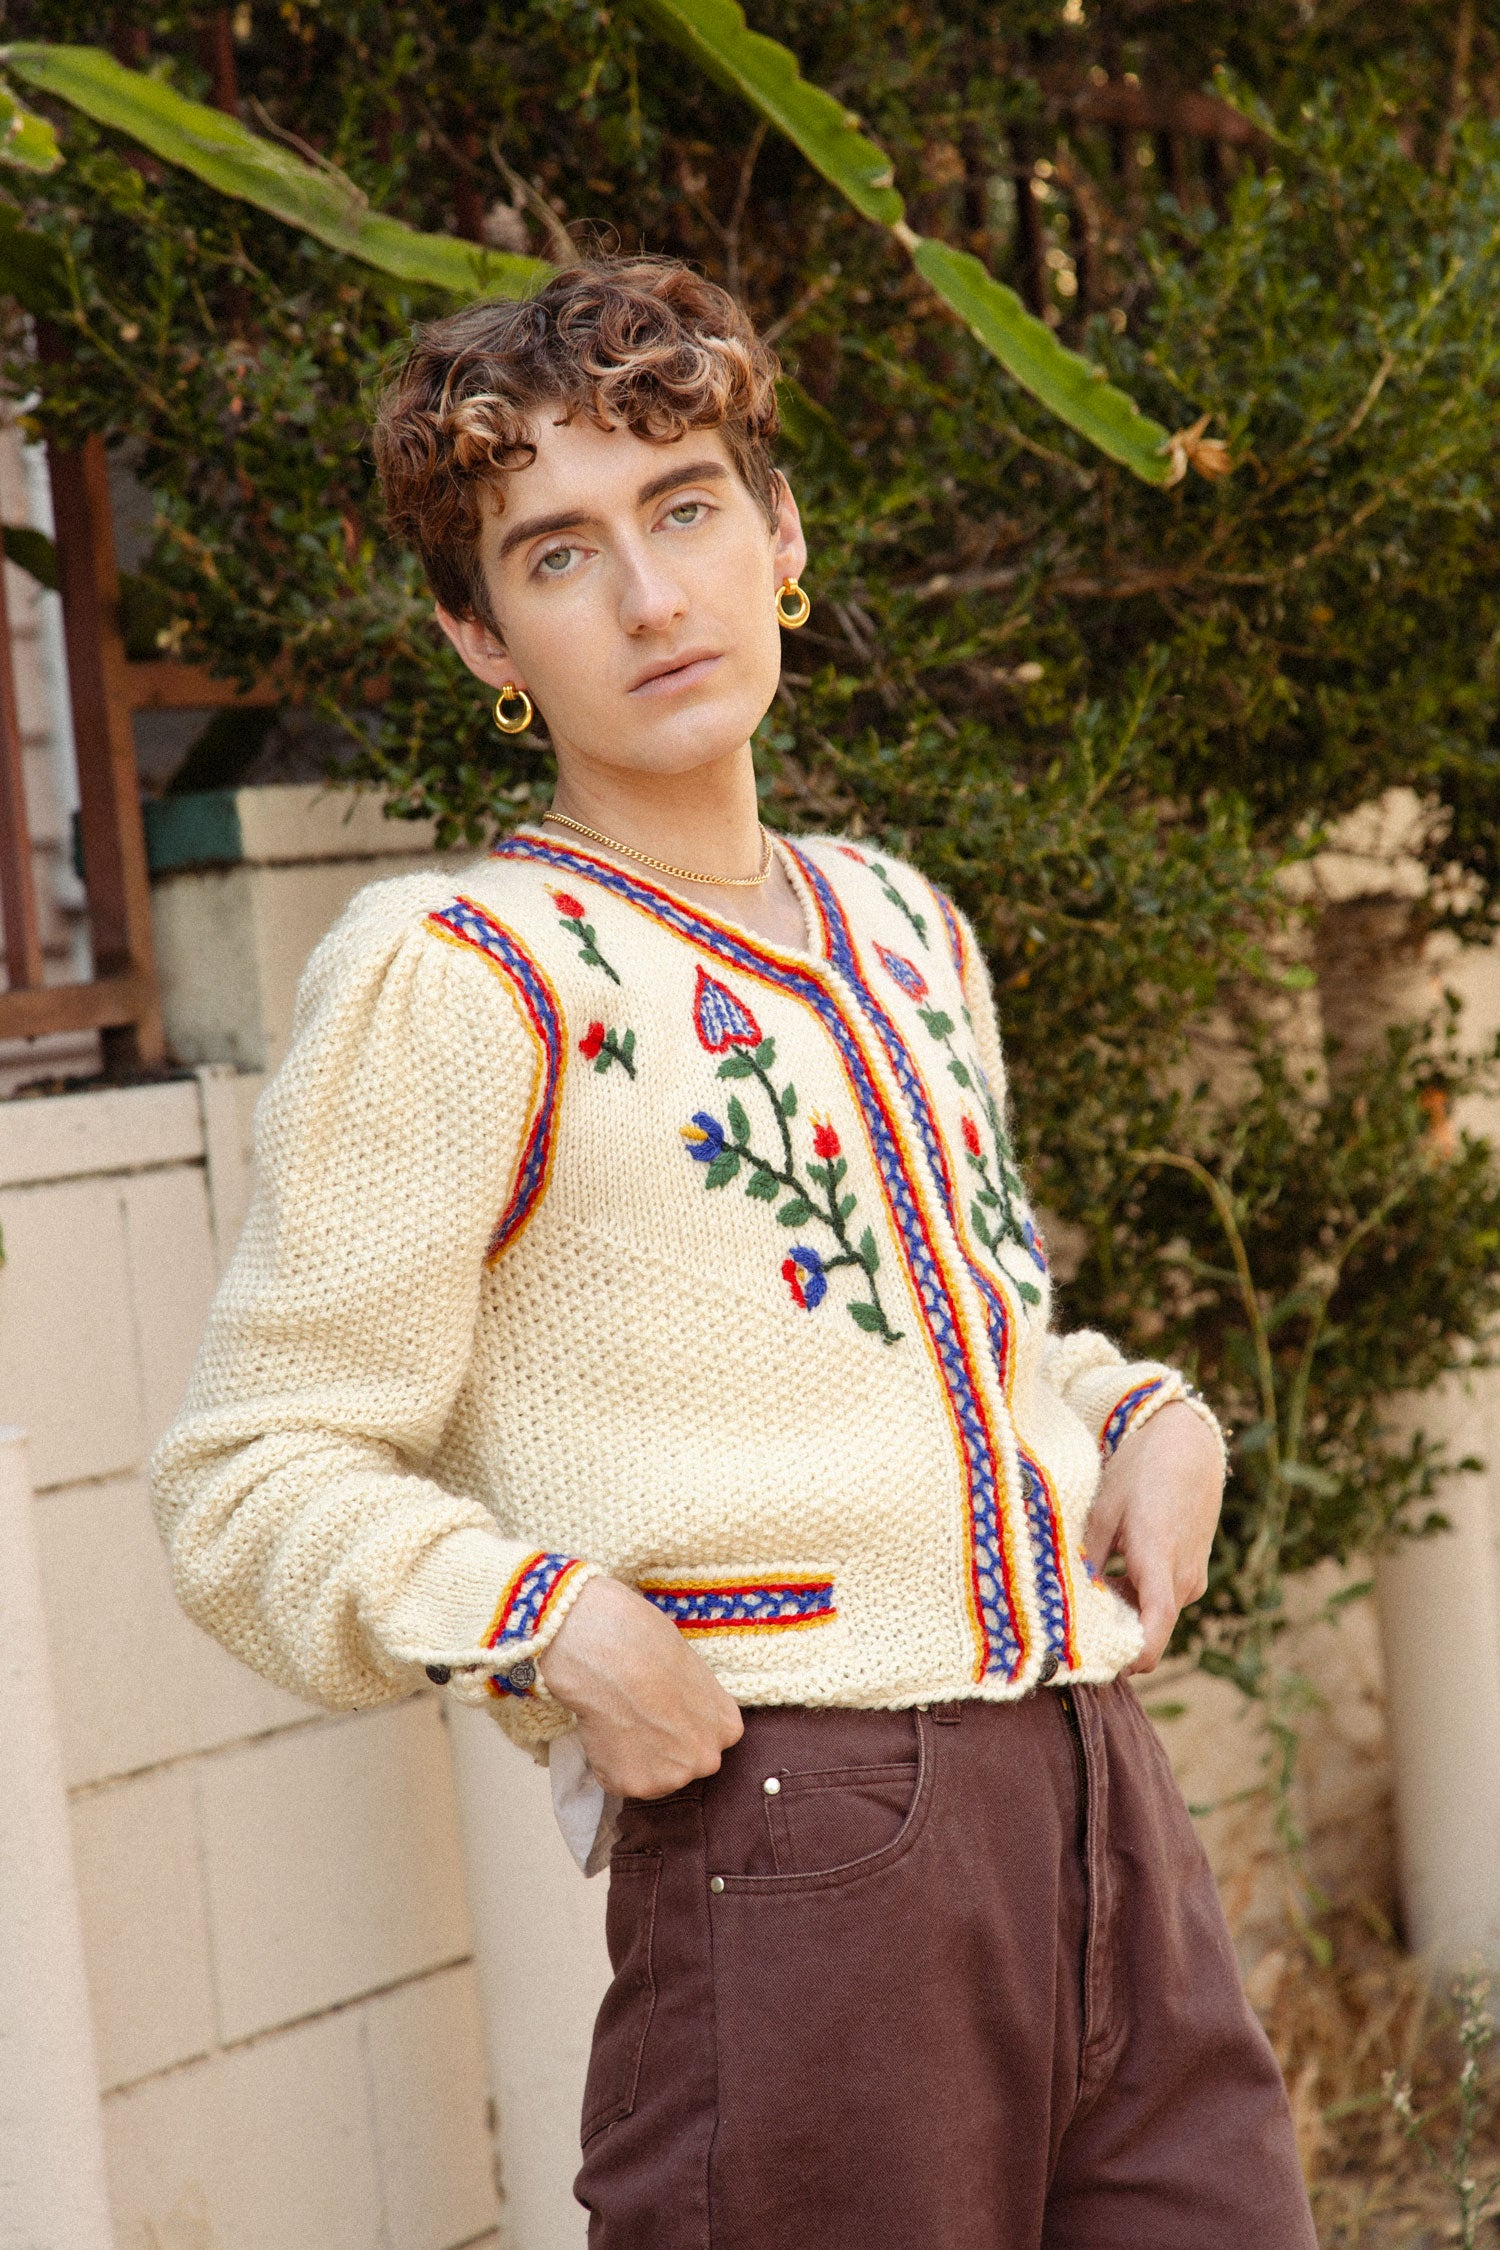 Non binary model wearing vintage chunky knit sweater.  Standing in front of cactus and other greenery.